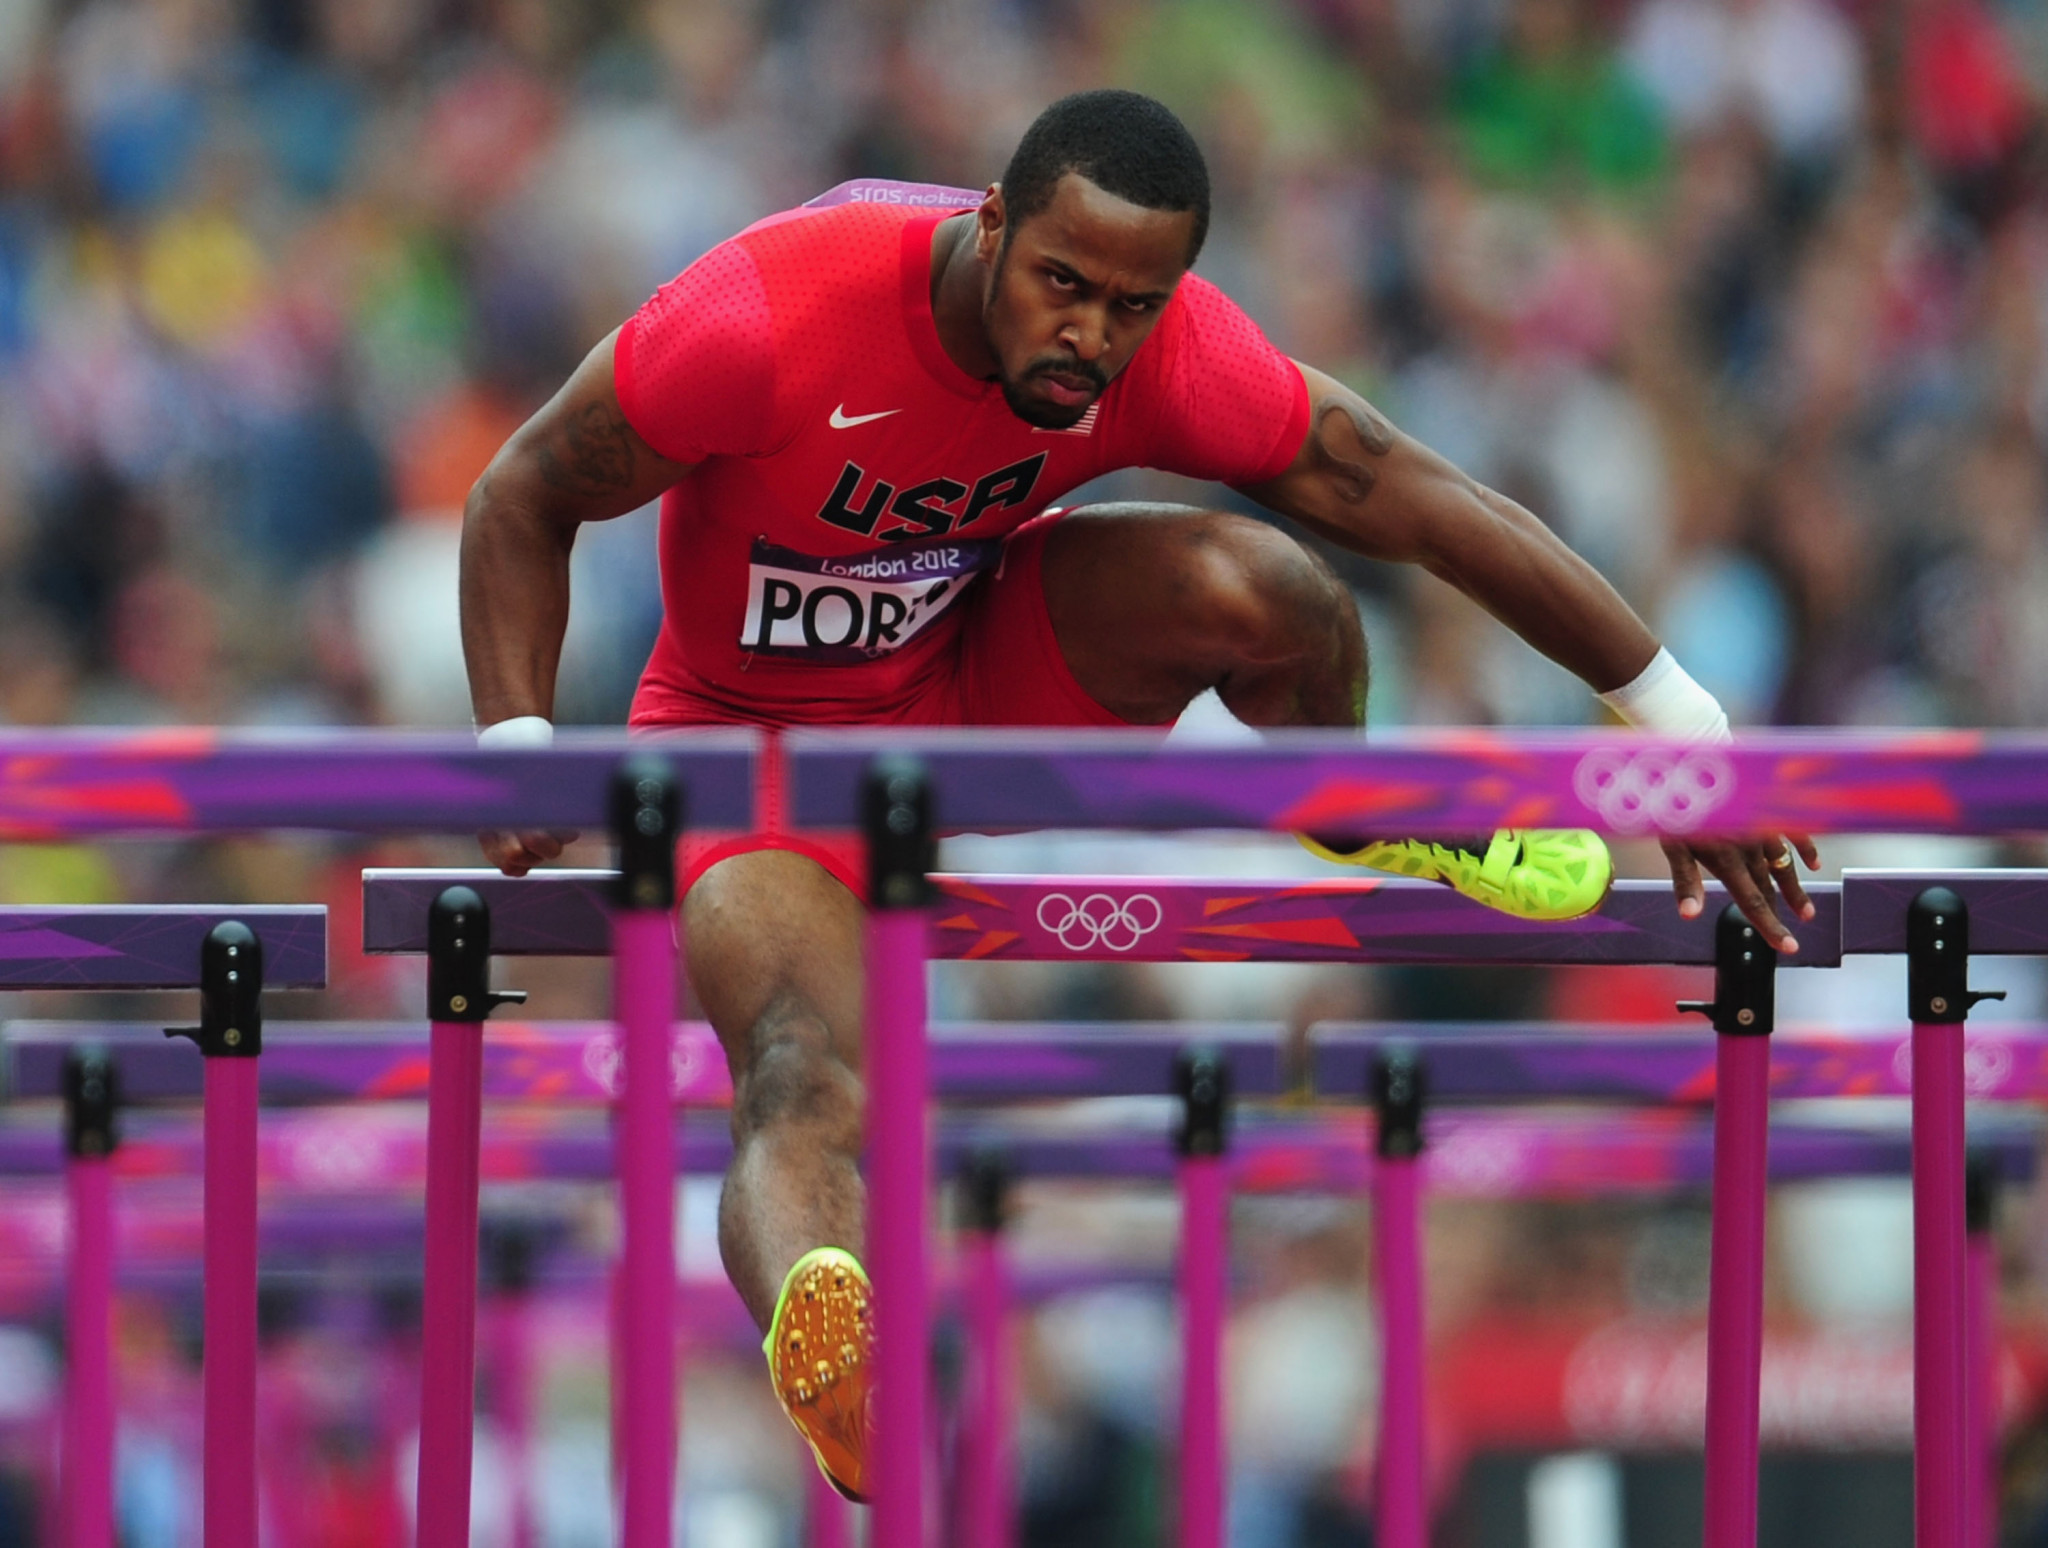 American hurdler Jeff Porter will sit on the WADA Athlete Committee next year ©Getty Images